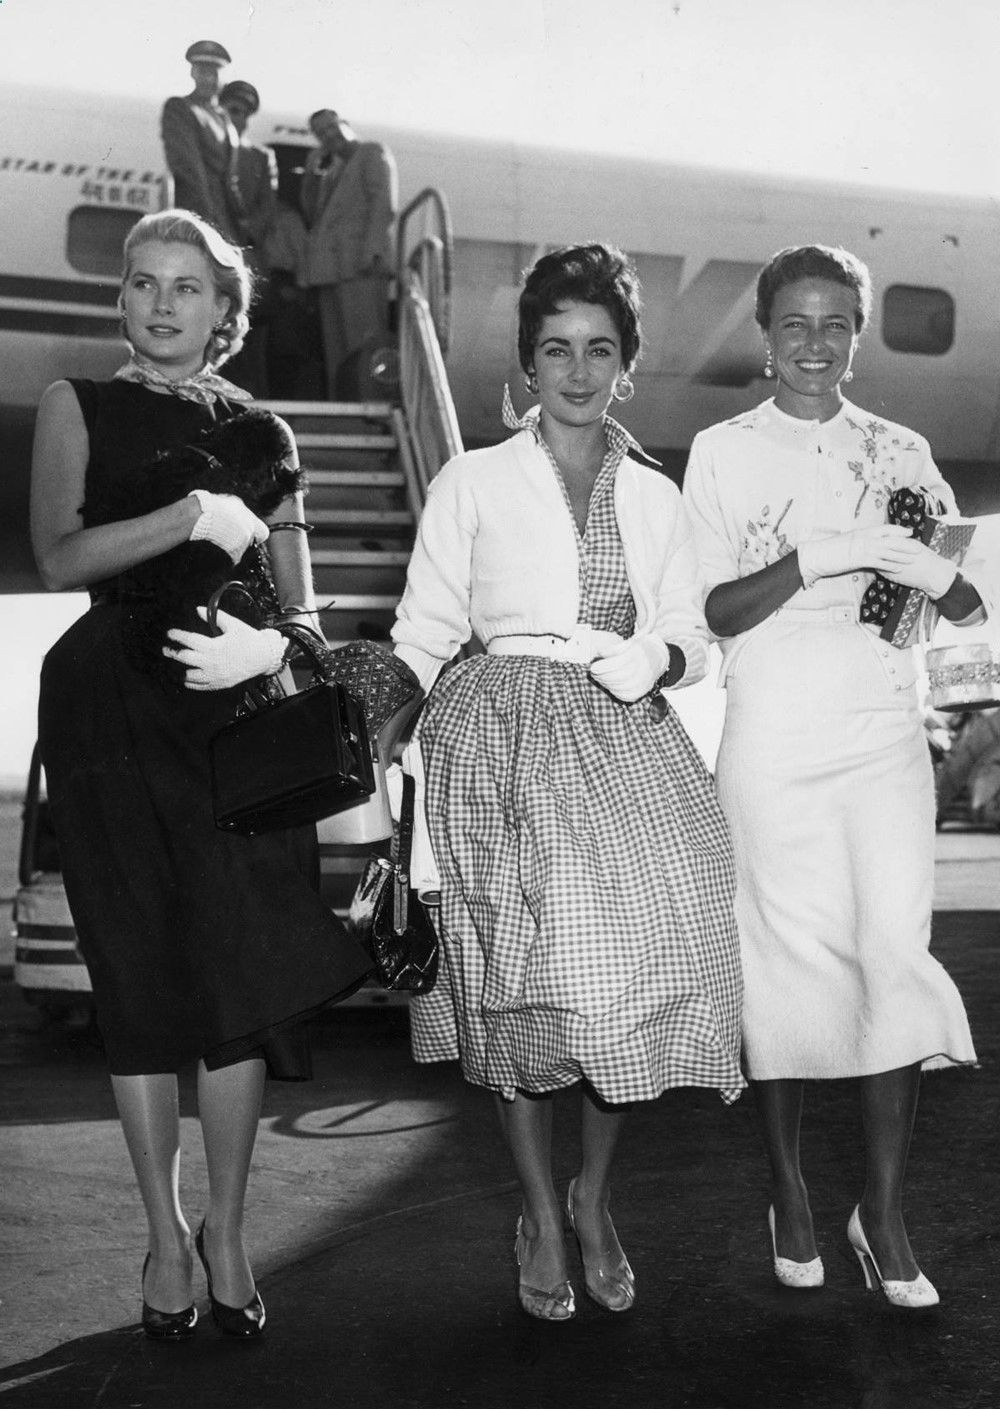 Grace Kelly, Elizabeth Taylor, and Laraine Day arriving at the New York International Airport, 1954 - Imgur